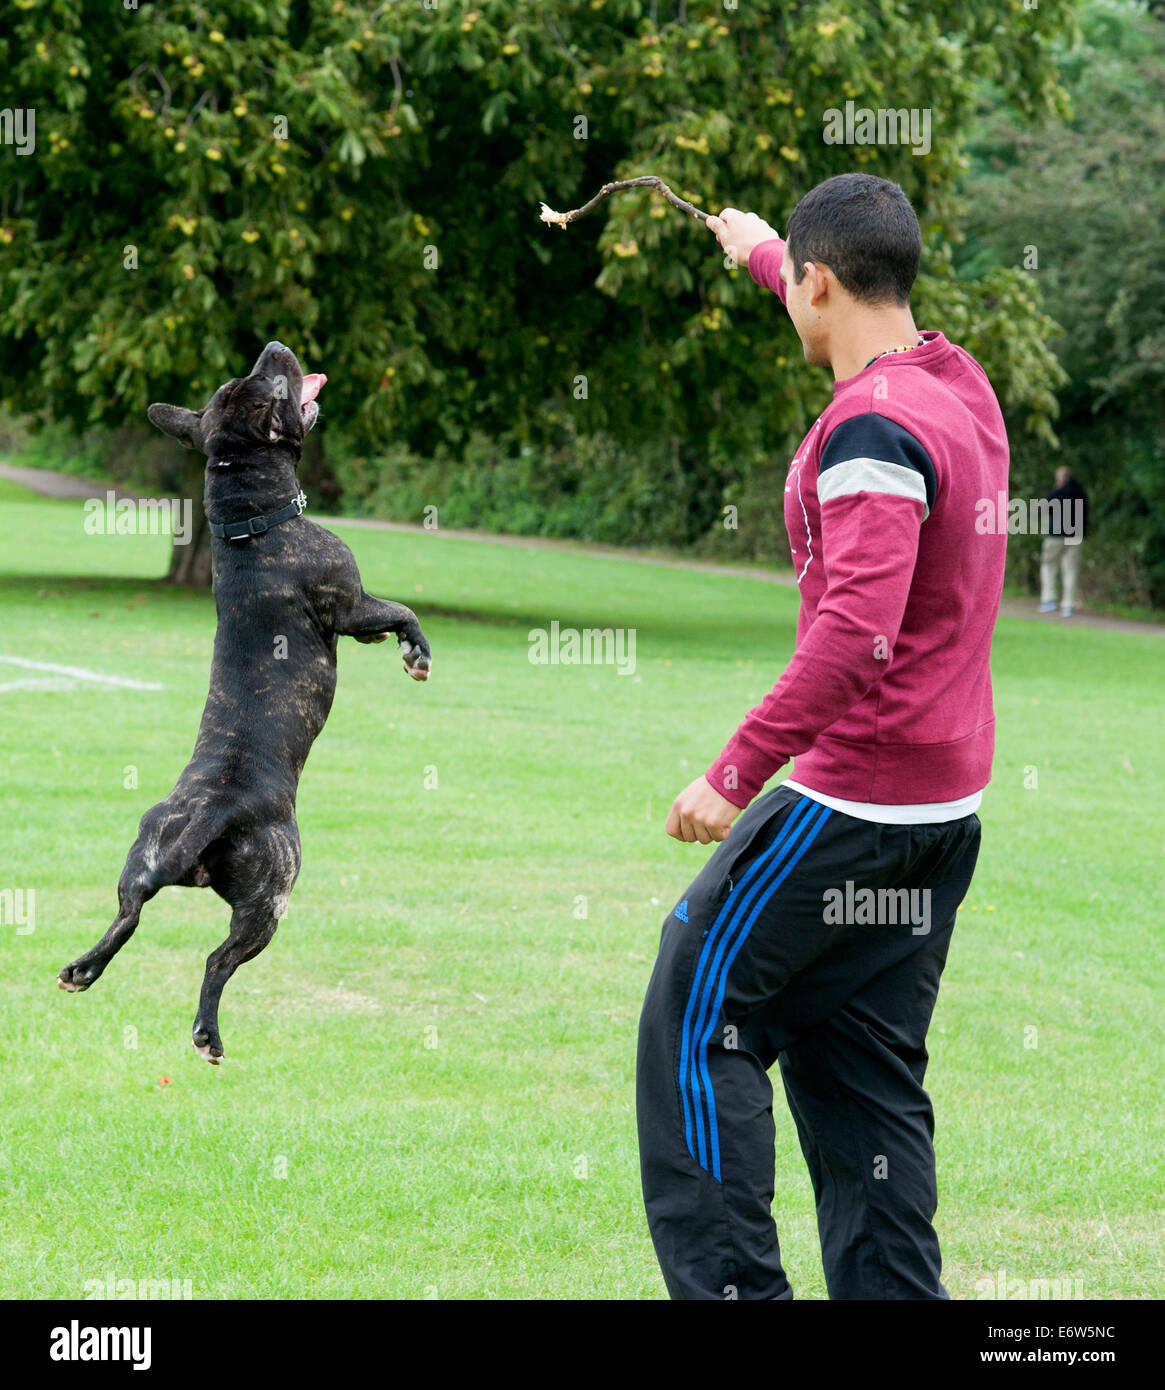 staffie staffy dog plays with a young man and a stick on the grass in a London park. - Stock Image